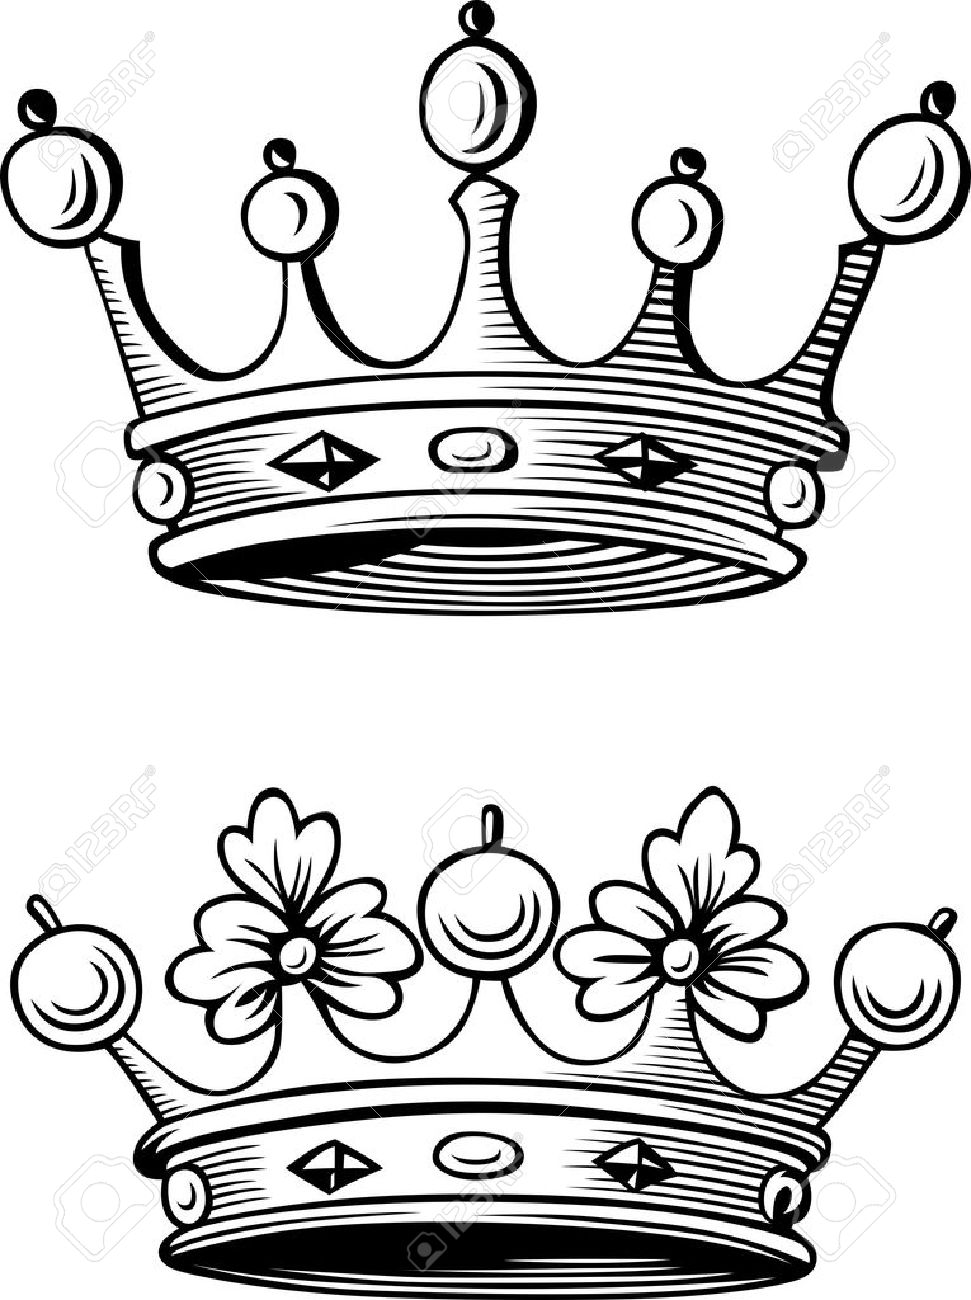 queen crown stock photos royalty free queen crown images and pictures